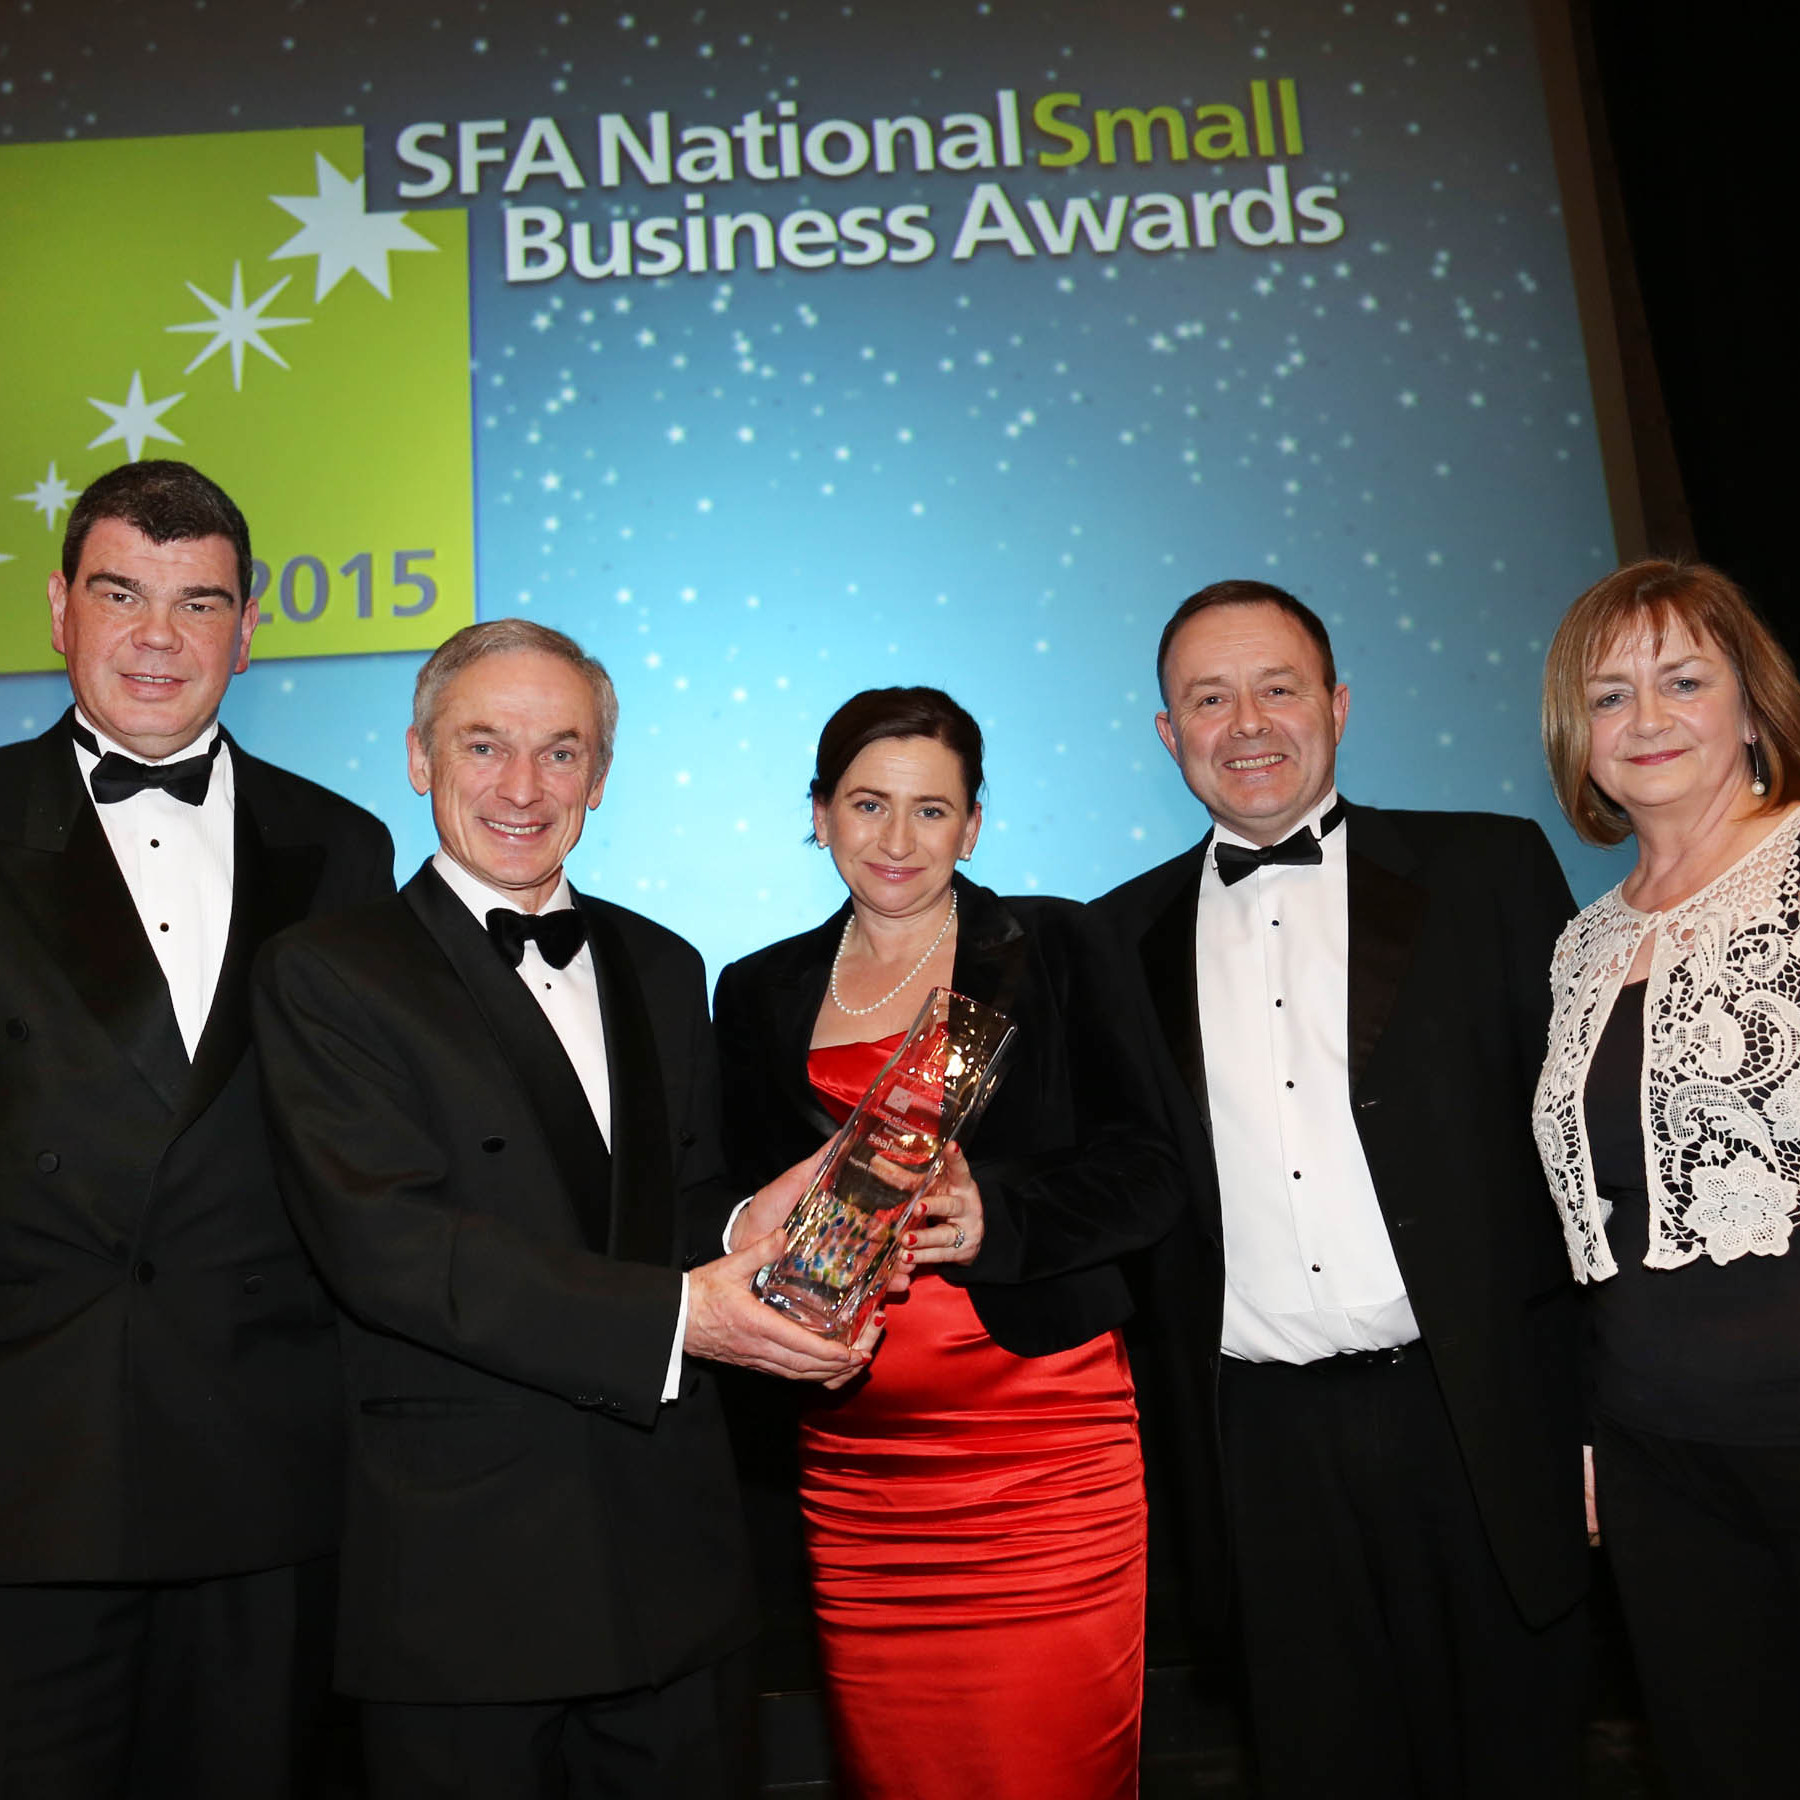 Environmental Winner - At the SFA National Small Business Awards 2015 today (Weds 4th March) are from (L-R)ÊAJ Noonan, Chairman, SFA, Richard Bruton TD,  Minister of Jobs, Enterprise and Innovation, Helen and Stephen Nugent, Nugent Manufacturing who were announcedÊwinners of the Environmental Sustainability category with Majella Kelleher,ÊHead of Energy DemandÊManagement,ÊSustainable Energy Authority of Ireland, sponsor of the Environmental Sustainability Award.